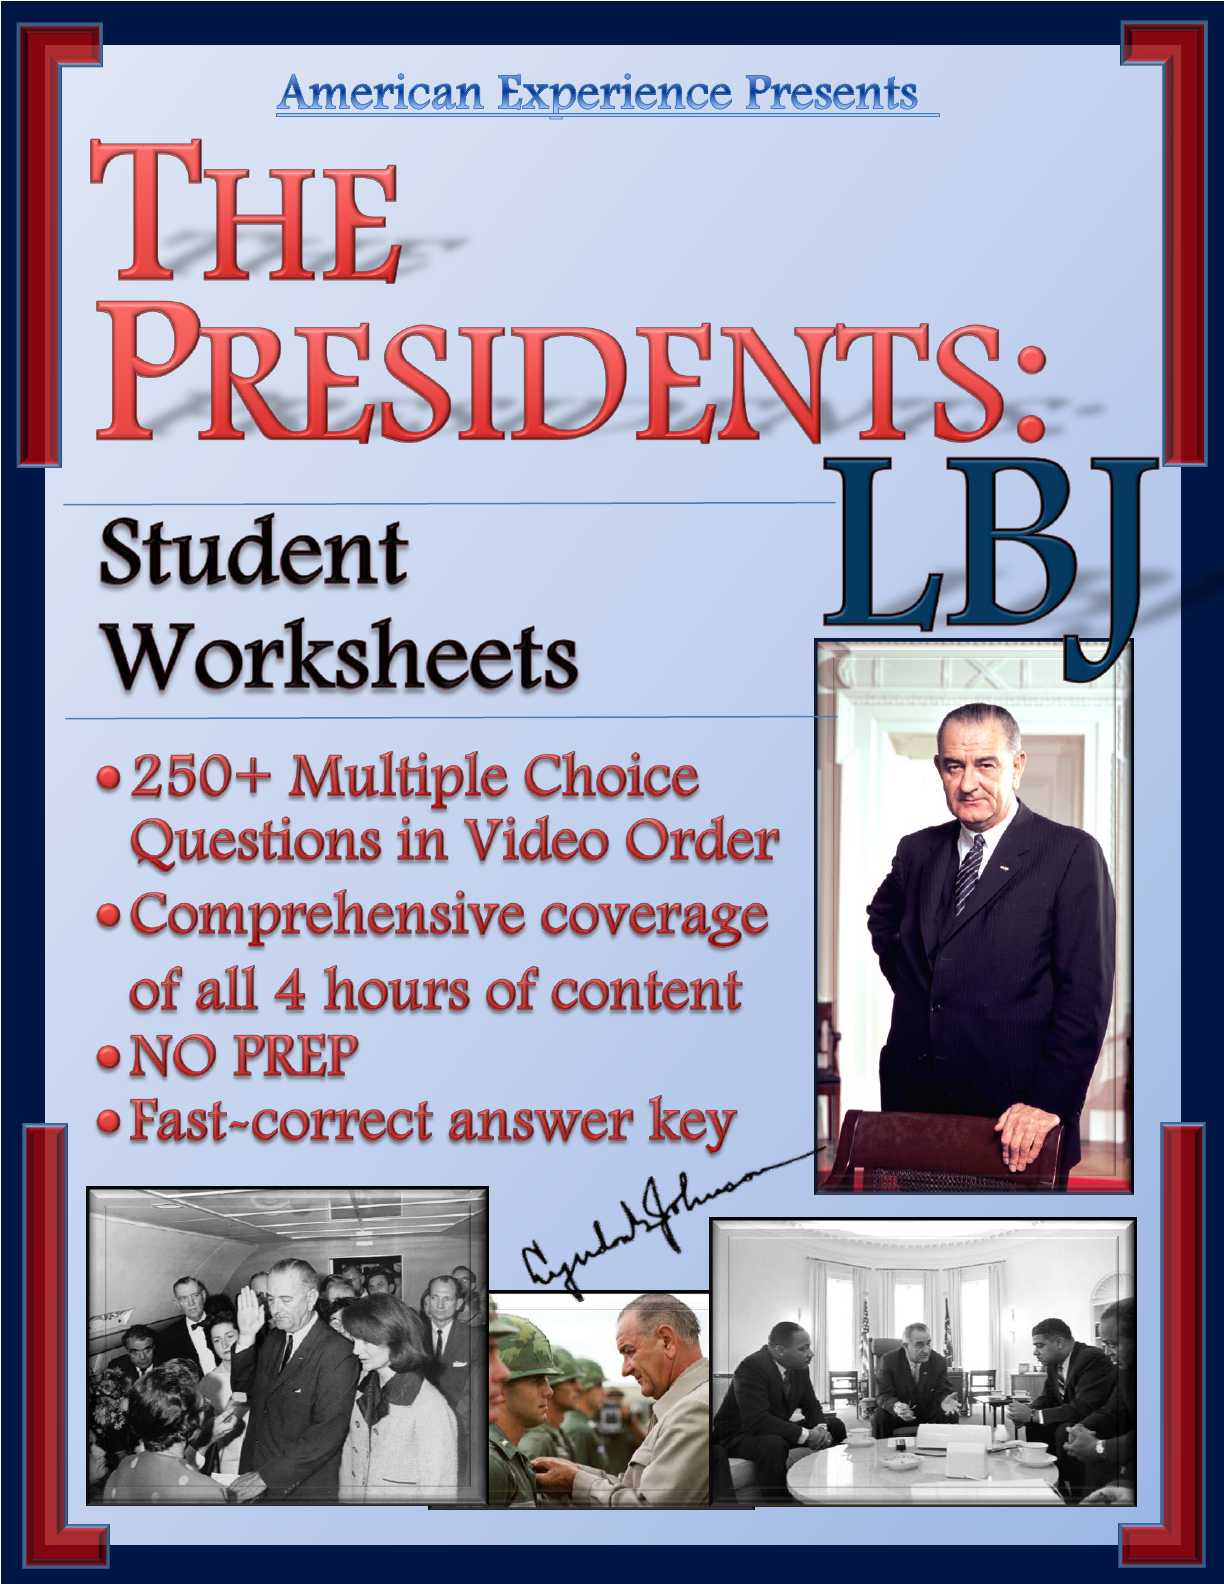 American Experience LBJ Worksheets Help Students Master the 1960s! More  than 250 Multiple Choice Questions…   Social studies lesson [ 1584 x 1224 Pixel ]